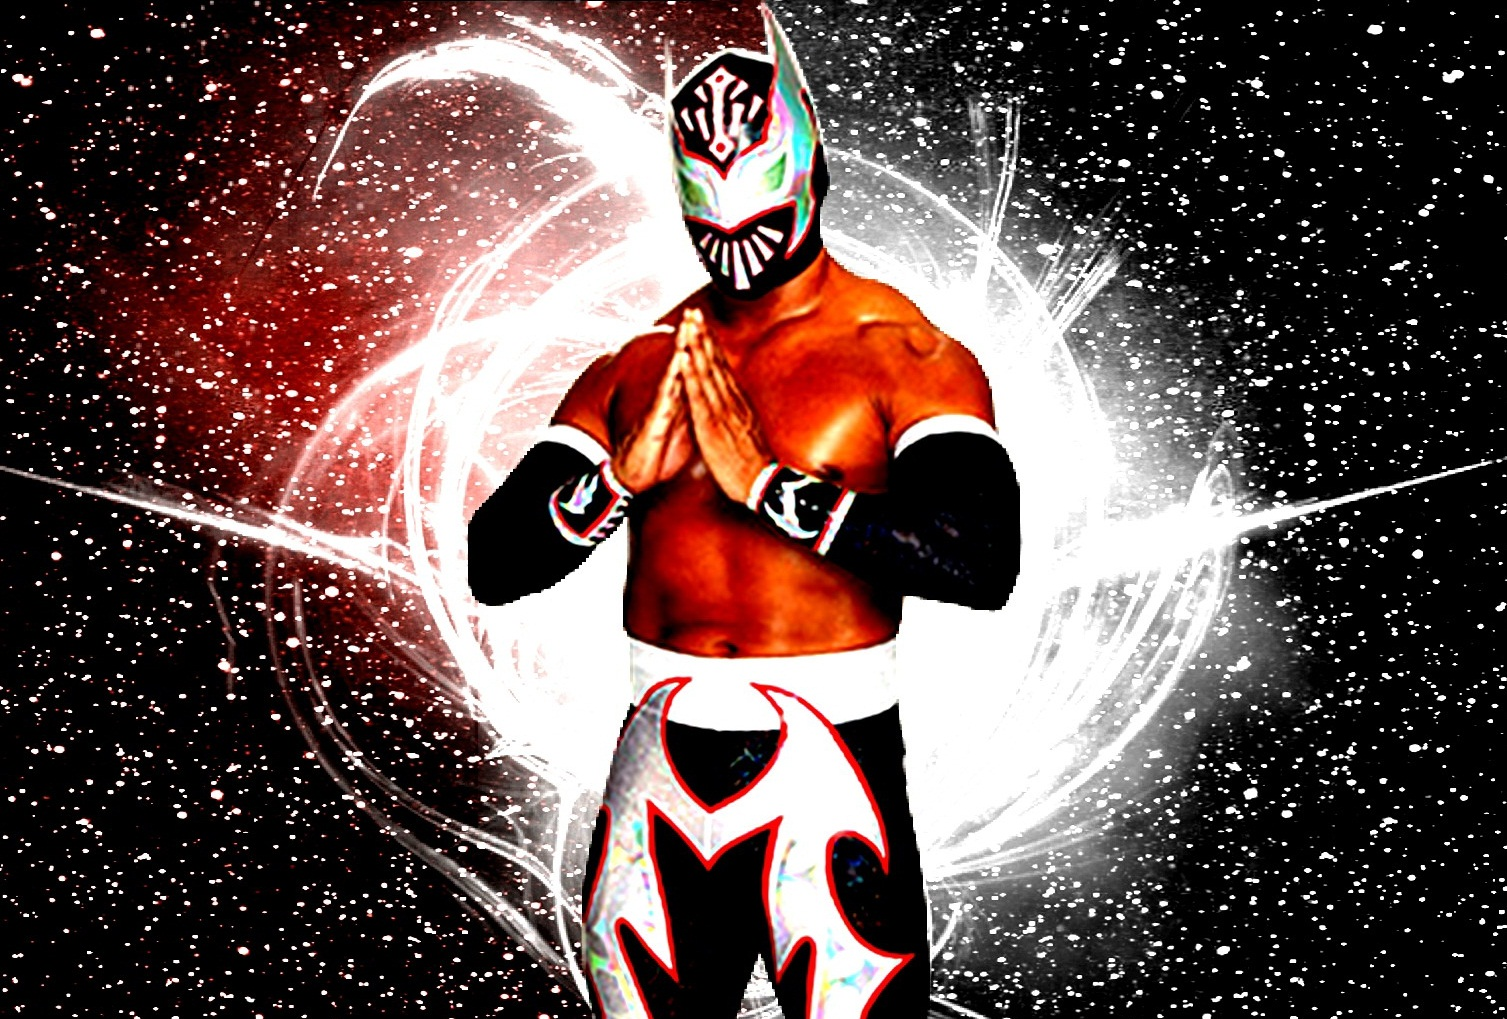 Sin Cara Wallpapers WWE Wrestling Wallpapers 1507x1019